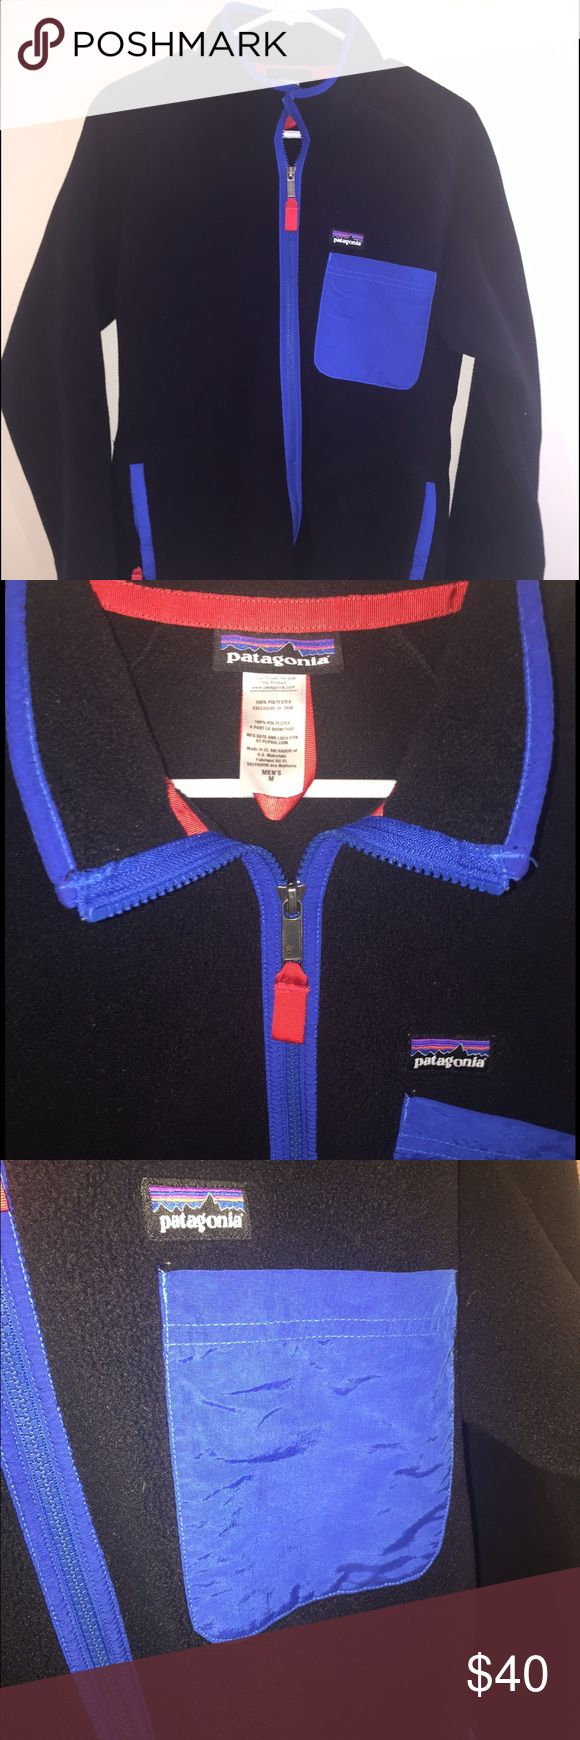 Men's Patagonia Zip Up This is a nearly new zip up from Patagonia! It is all black with blue details! Super soft and comfy for winter! Patagonia Jackets & Coats